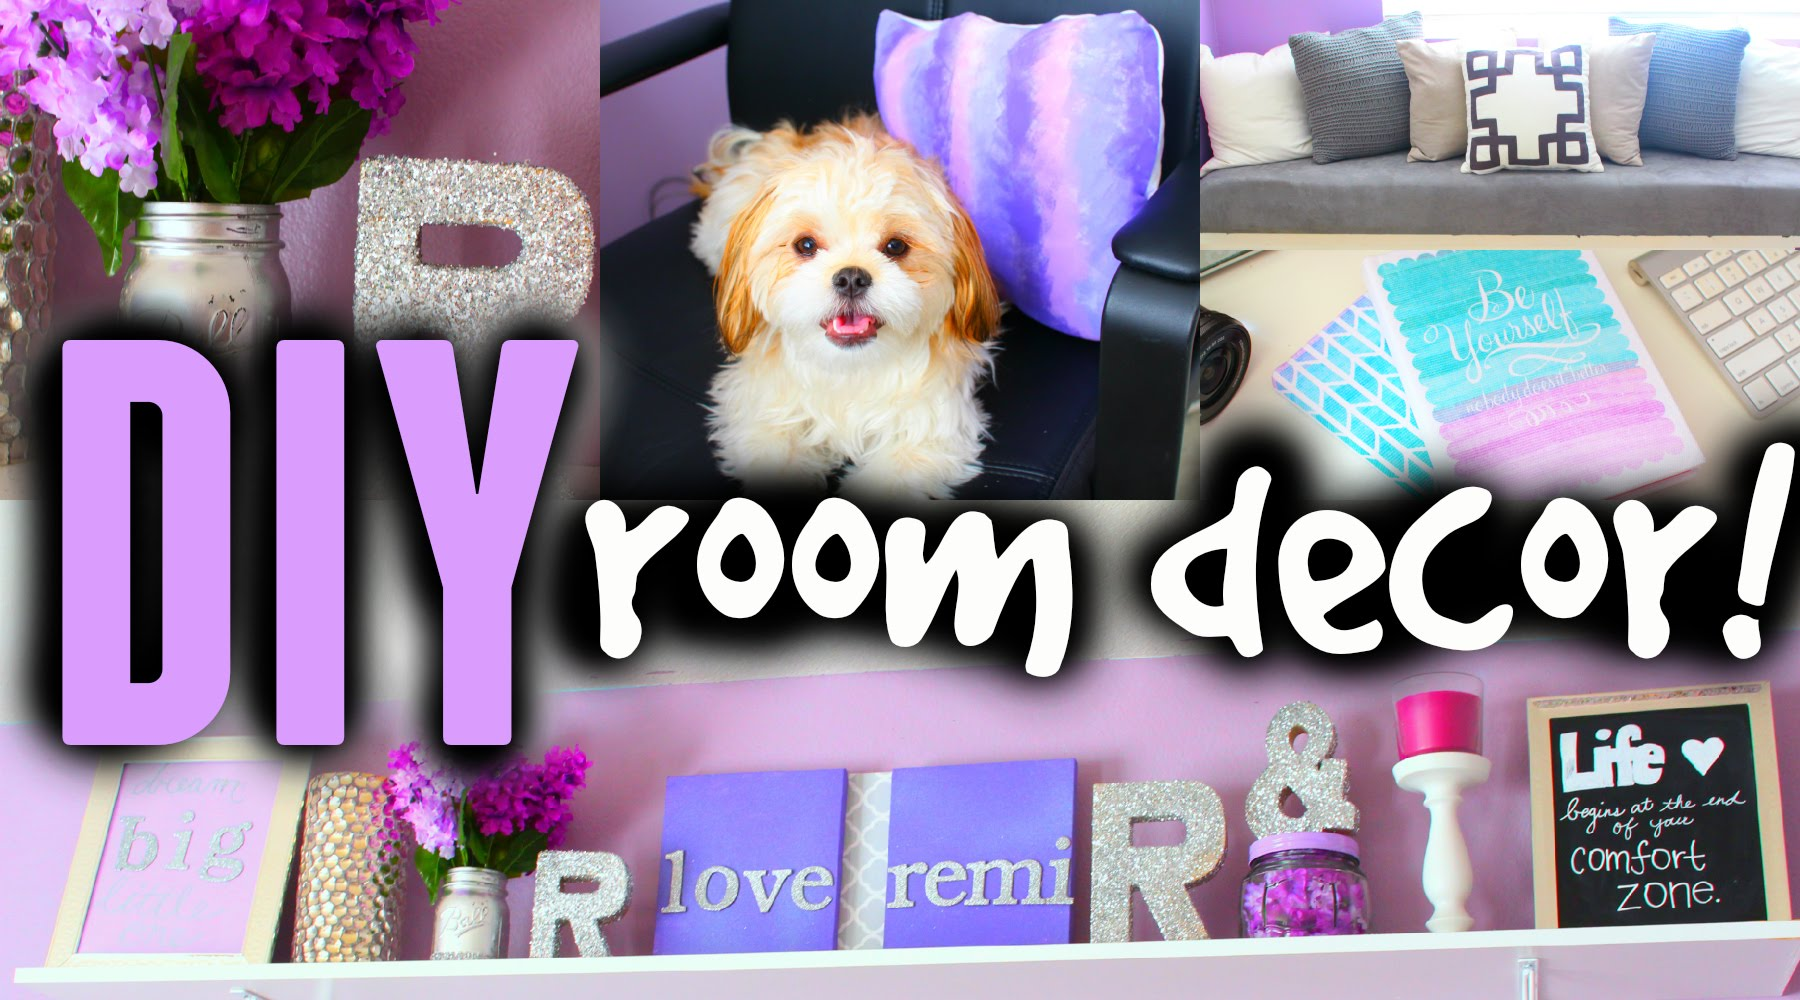 Diy Projects Video Room Decor Ideas For Teens Cute Cheap Easy Diyall Net Home Of Craft Inspiration How To S